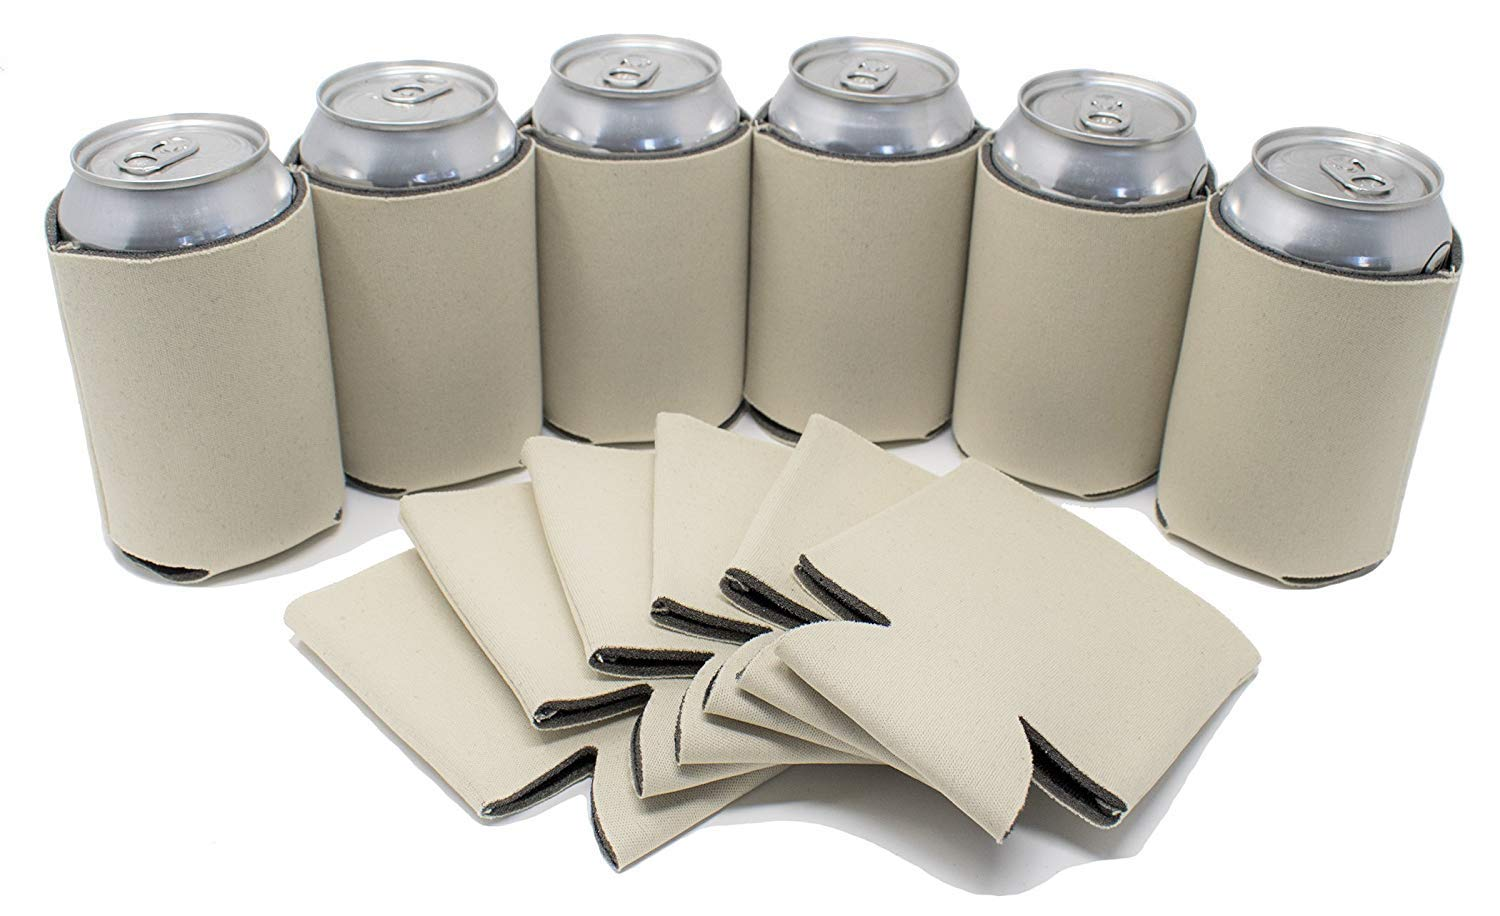 TahoeBay 12 Blank Beer Can Coolers, Plain Bulk Collapsible Soda Cover Coolies, DIY Personalized Sublimation Sleeves for Weddings, Bachelorette Parties, Funny HTV Party Favors (Khaki, 12)